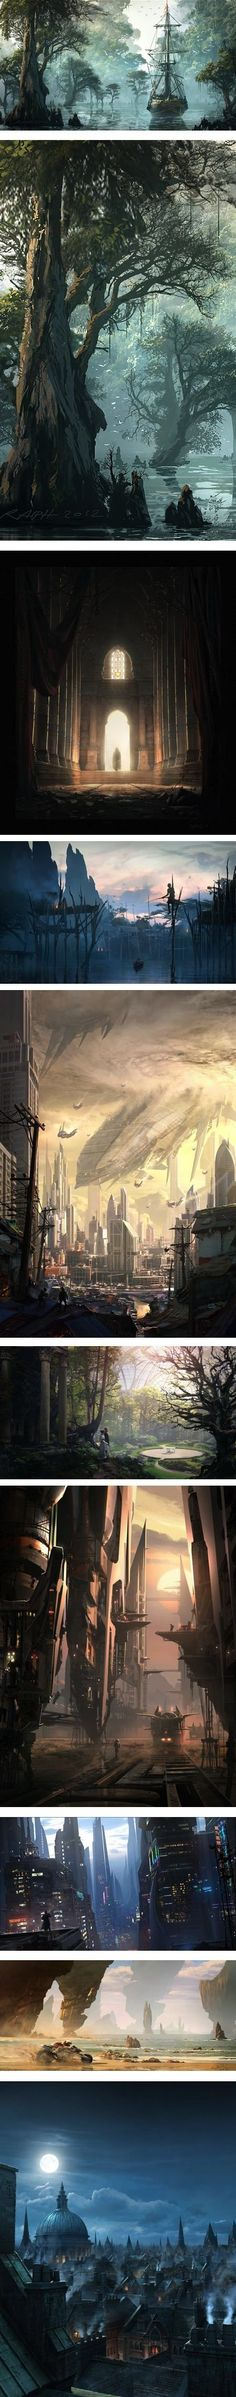 Lines and Colors: a blog about drawing, painting, illustration, comics, concept art and other visual arts » Raphael Lacoste